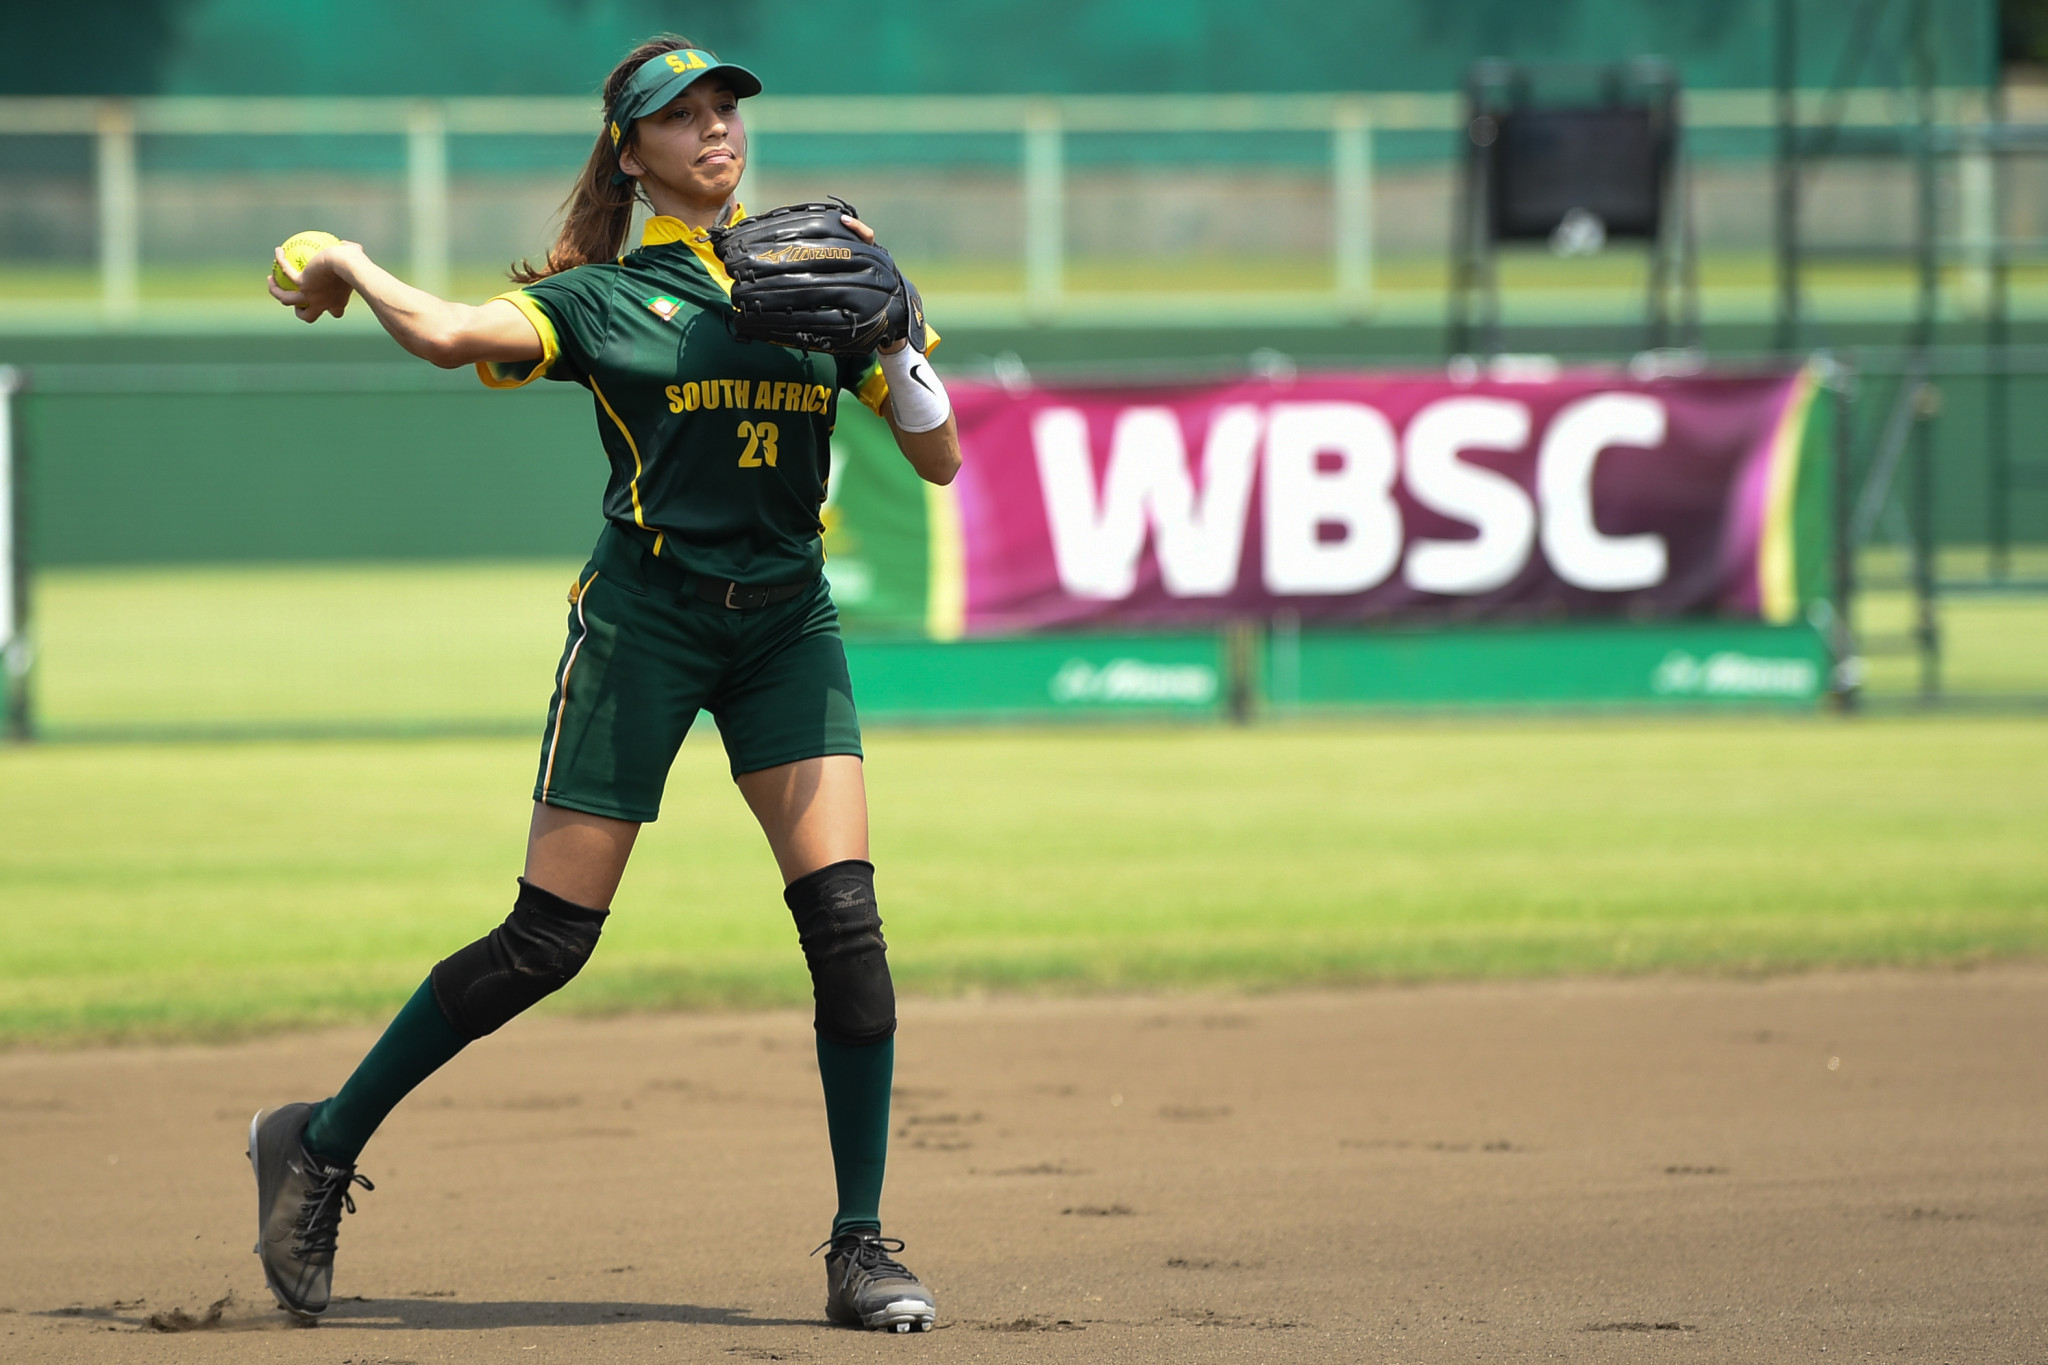 WBSC helps to launch new website dedicated to the African continent